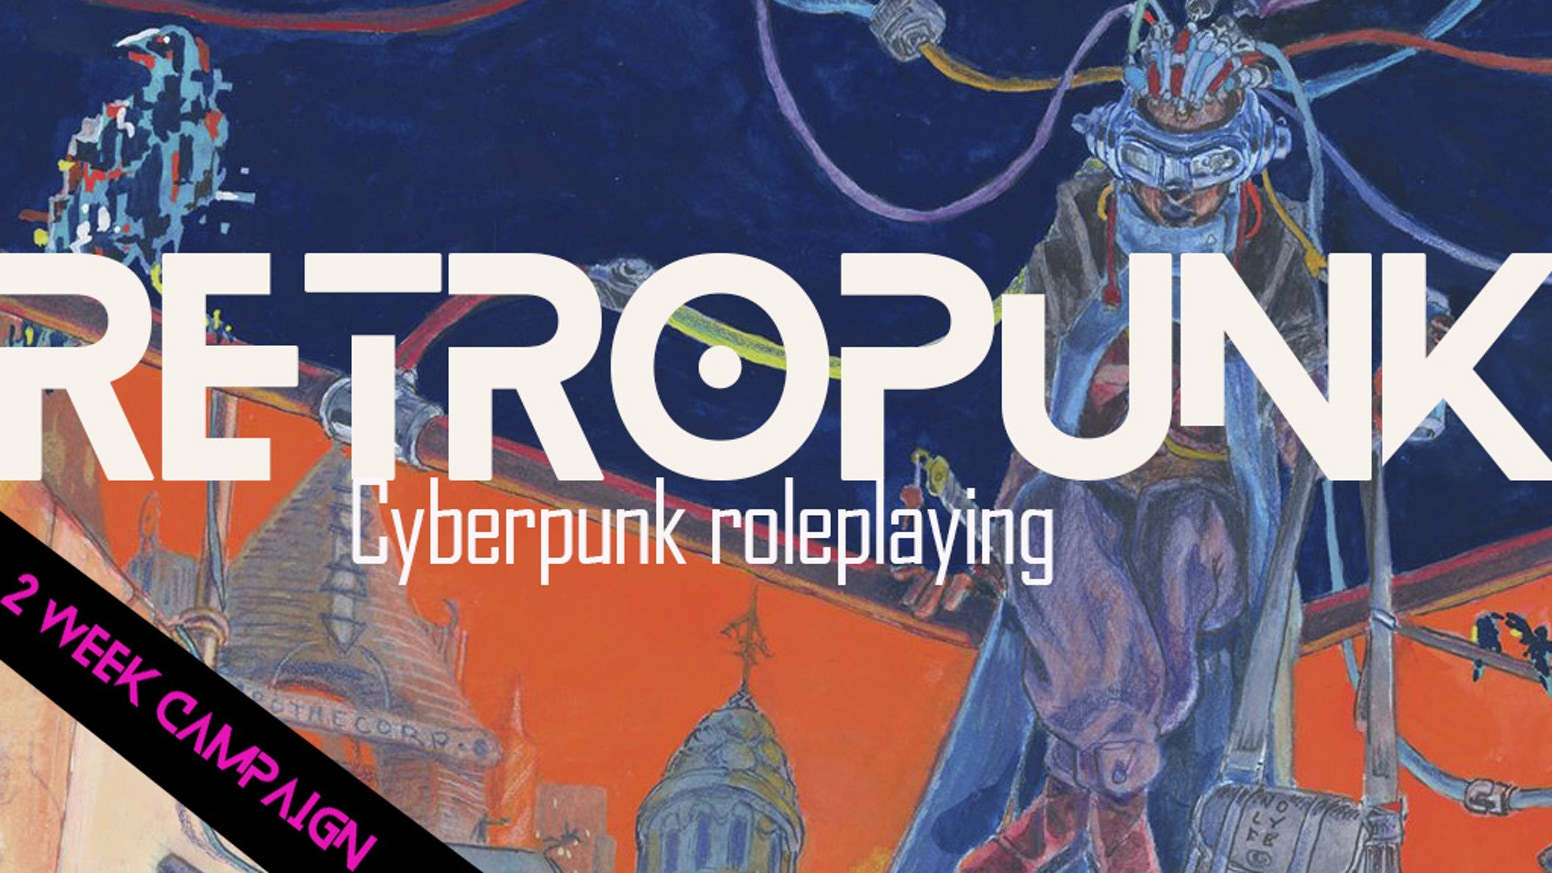 Modern and old-school cyberpunk tabletop game design set in a world where the digital and physical create a new hybrid reality